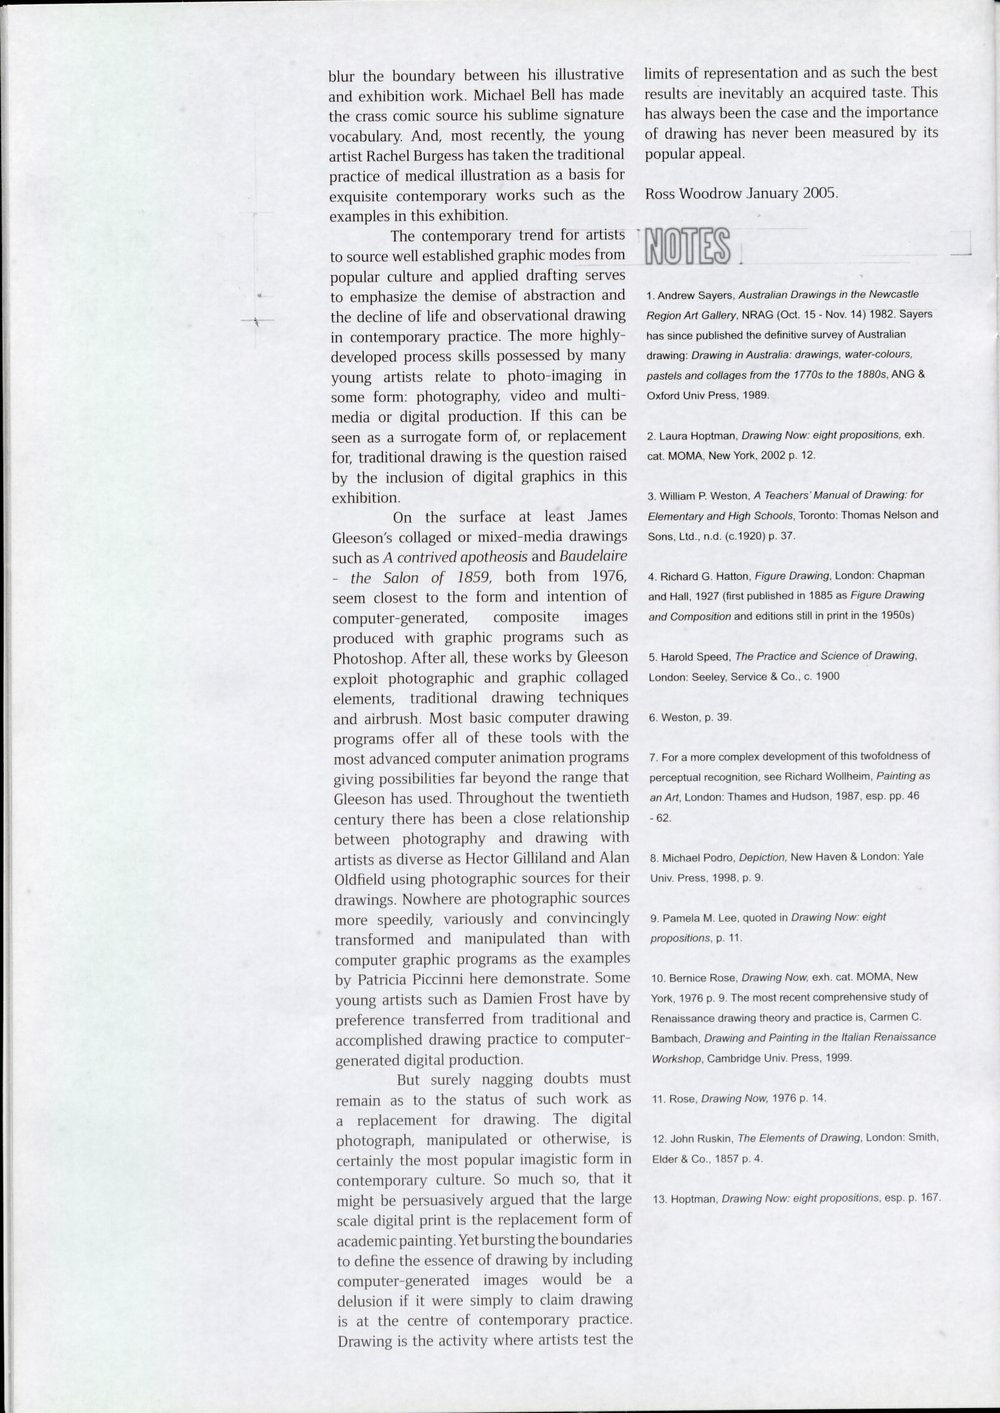 DrawingCentre-essay (1)_Page_6.jpg